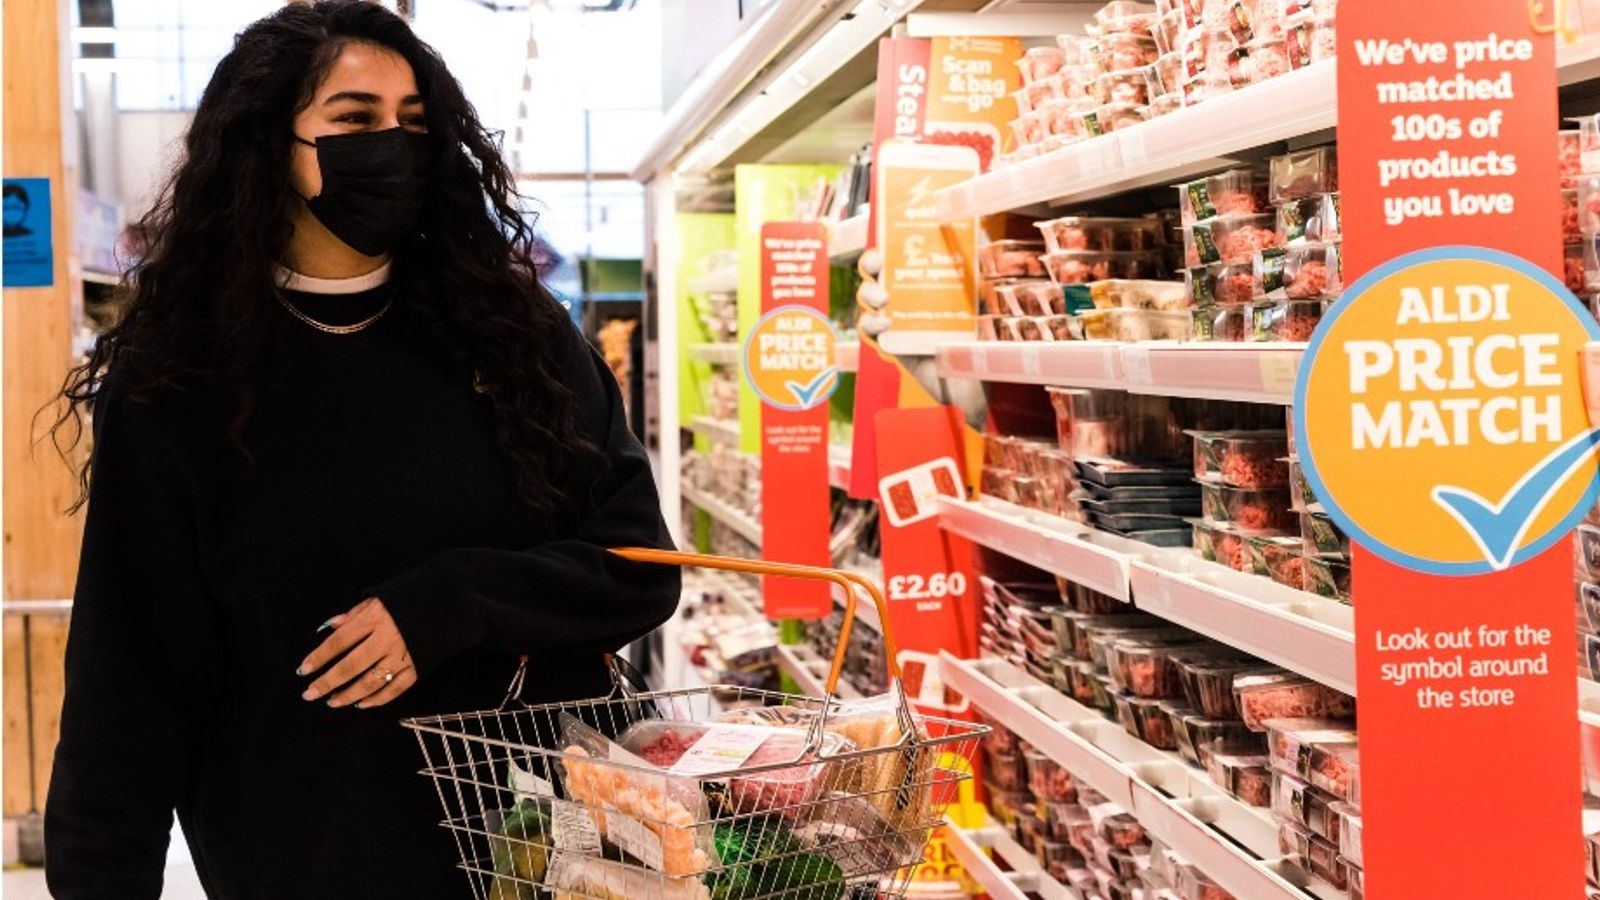 COVID-19: Sainsbury's to encourage shoppers to keep wearing face coverings